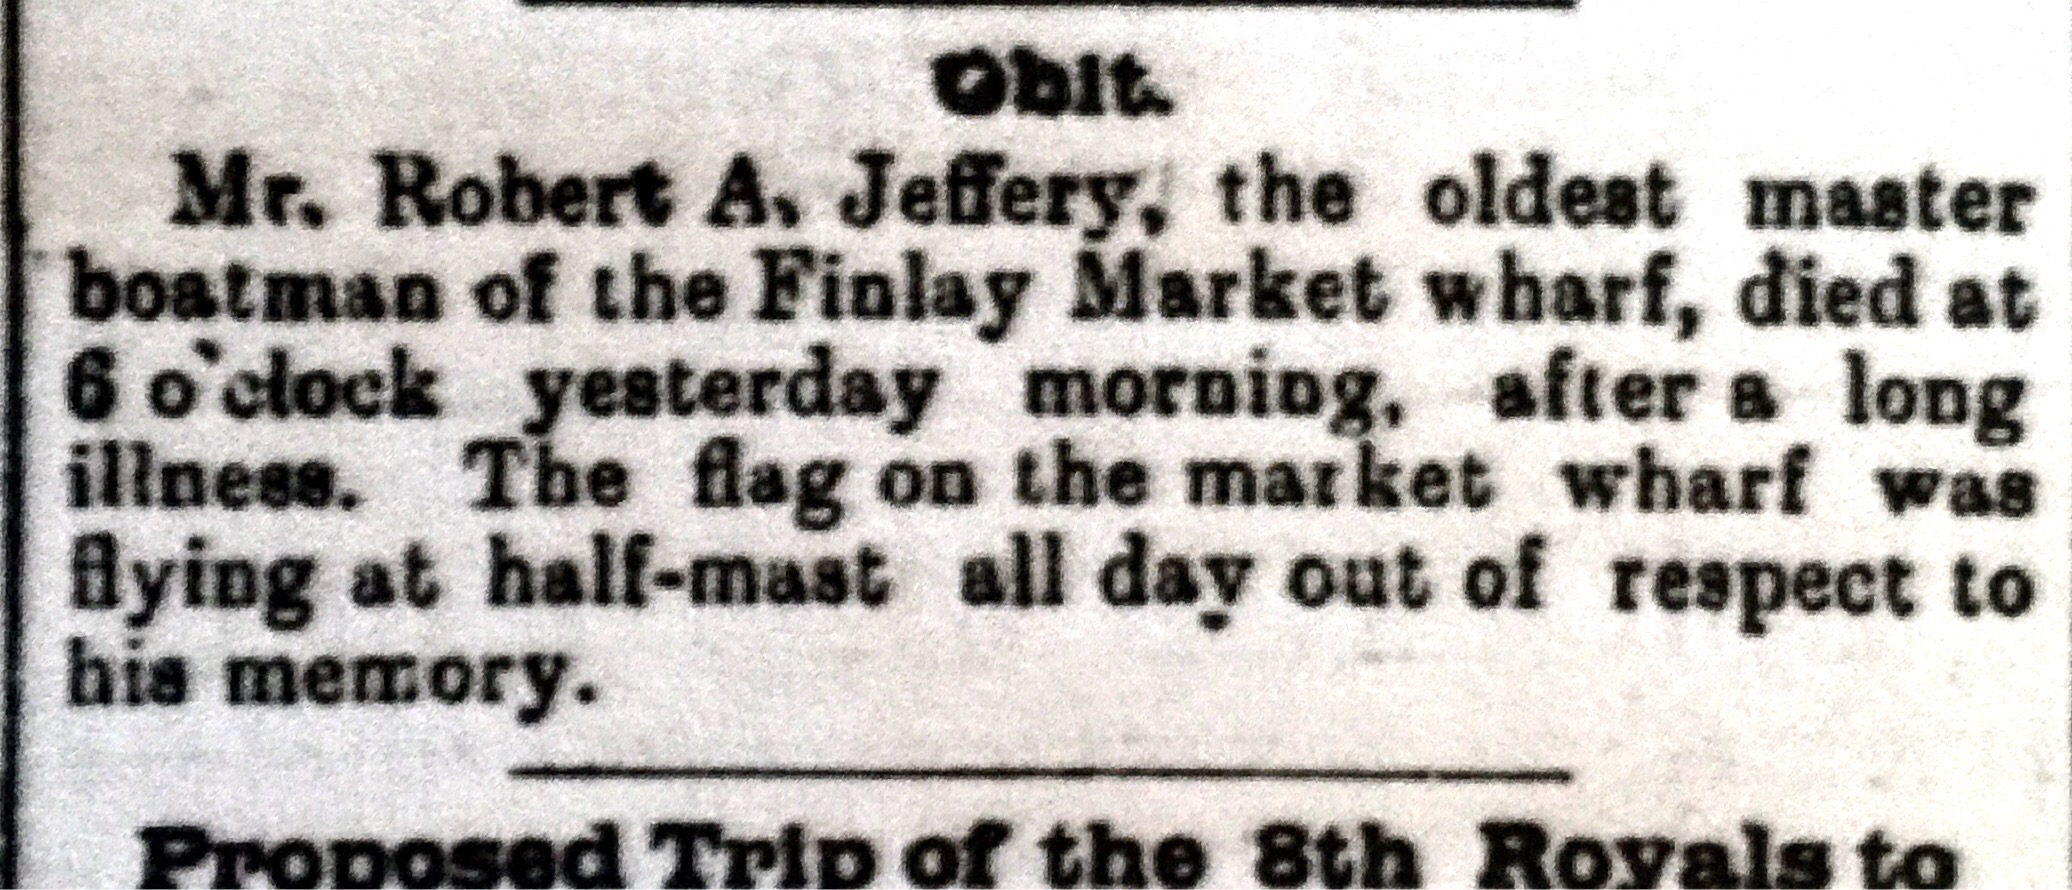 JEFFERY, Robert A obit 4 June 1897 Morning Chronicle